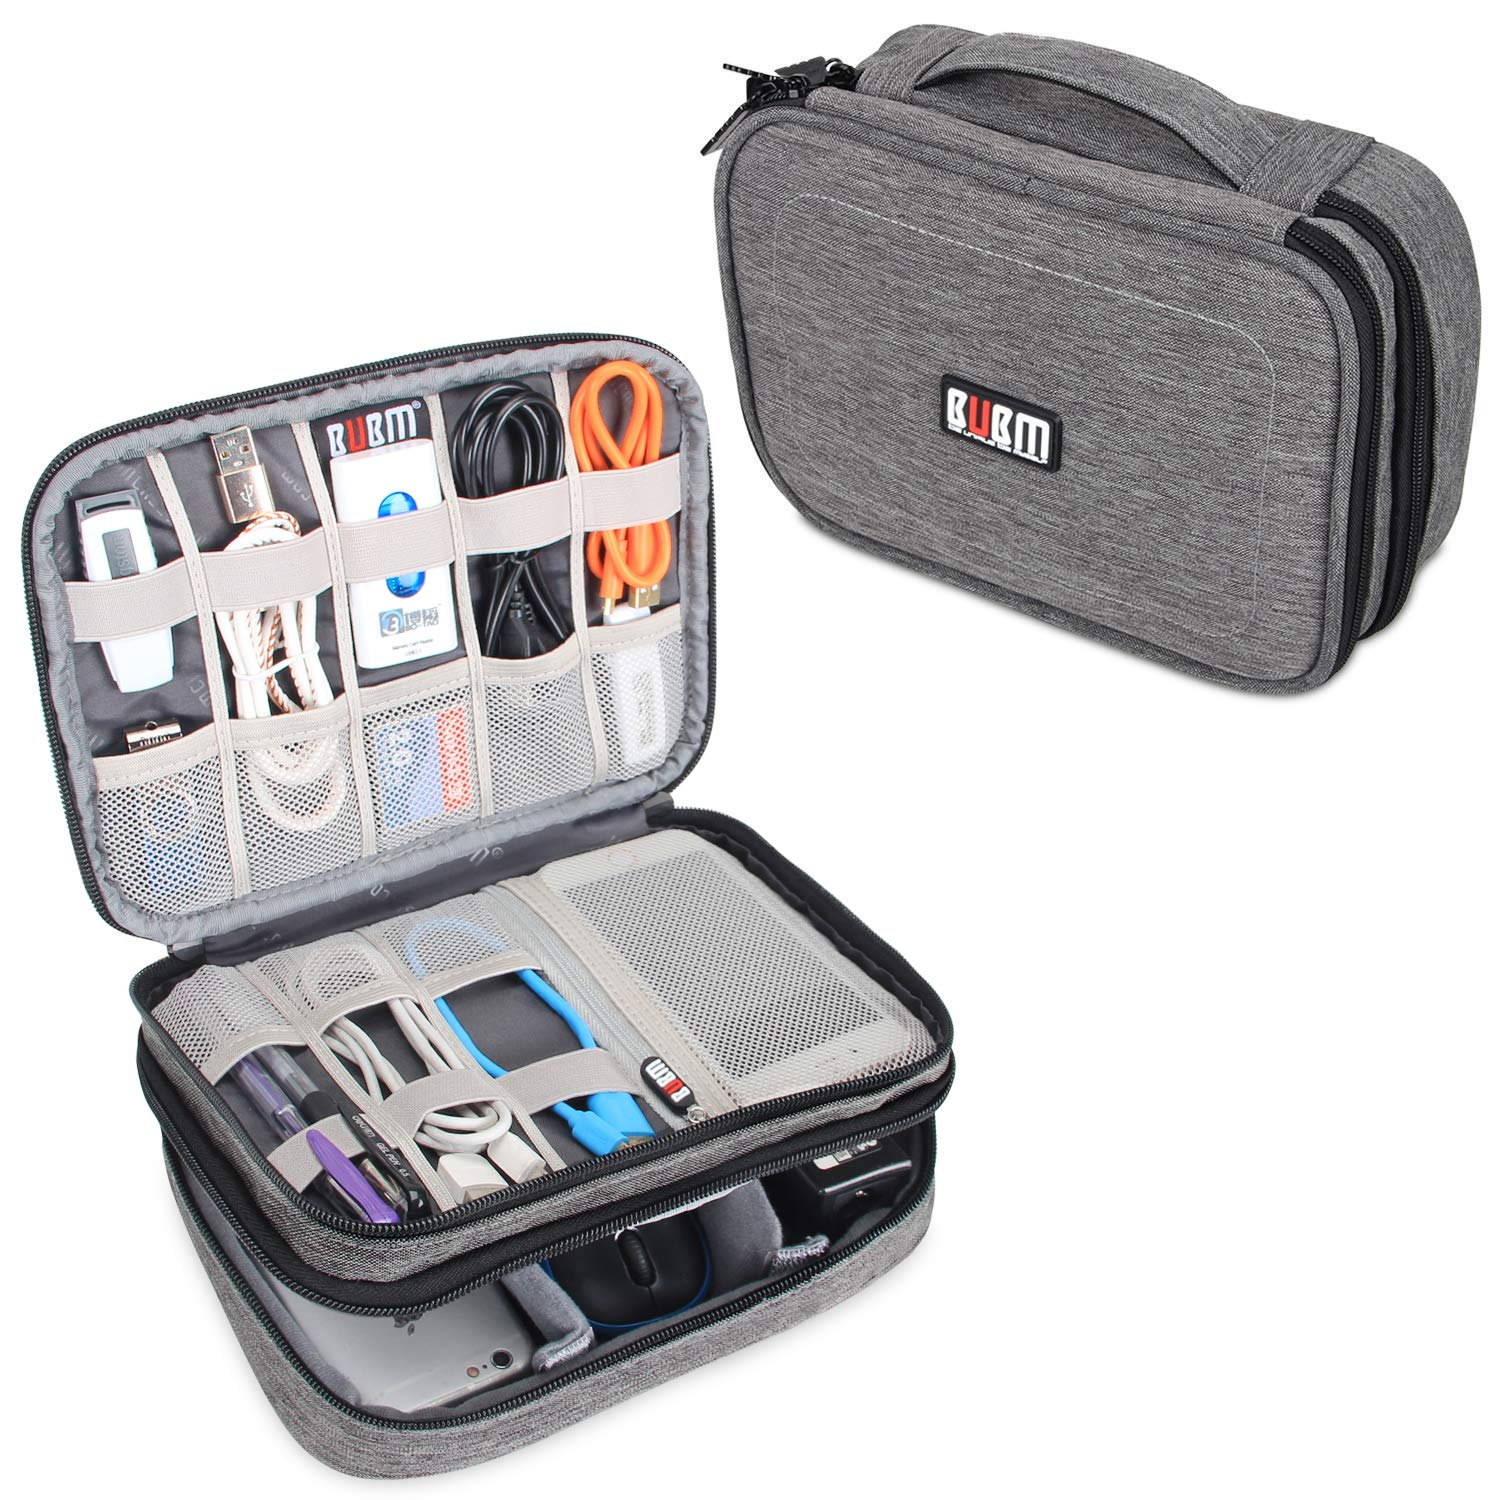 d67d3e02192c BUBM Travel Cable Bag, Ultra-compact Electronics Gadget Organiser Case for  Data Cables, Chargers, Plugs, Memory Cards, CF Cards and More-a Sleeve ...